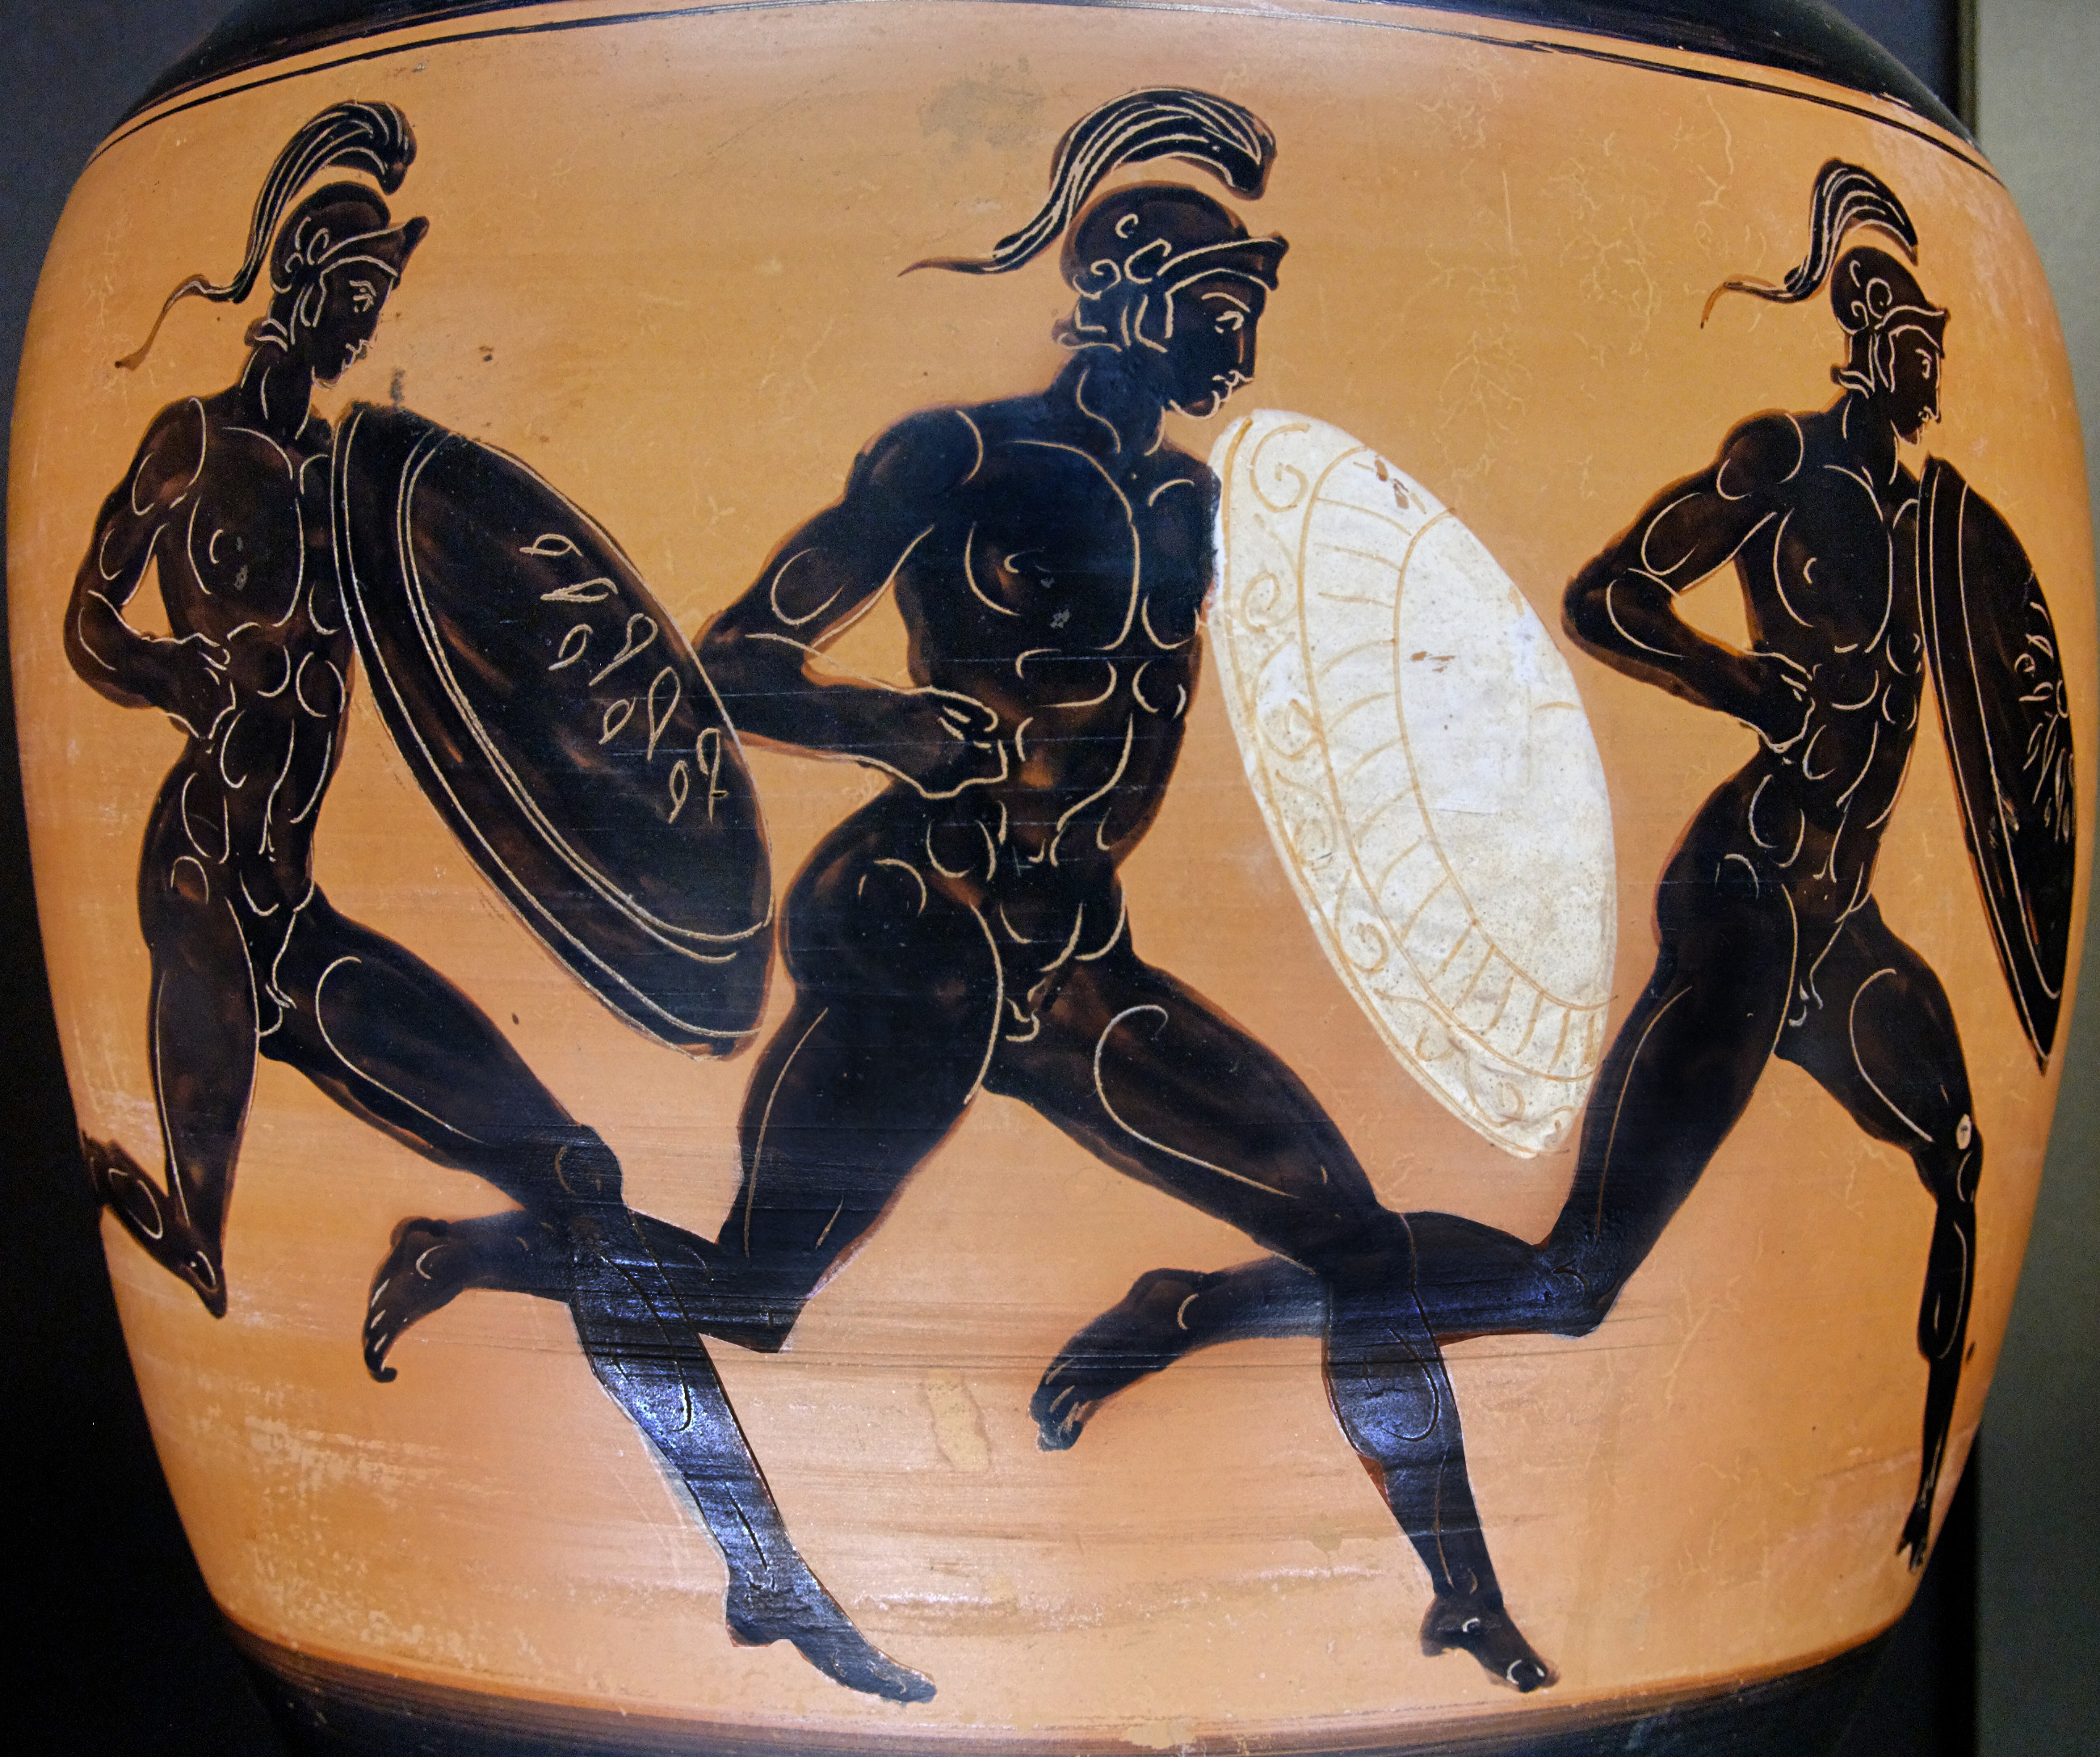 role of tribalism and racism in ancient greece Tribalism is one of history's great destroyers once racial if not racism tribal infighting is usually what erodes otherwise common cultures from the city-states of ancient greece to the constantly warring republics of renaissance italy to an increasing divided.